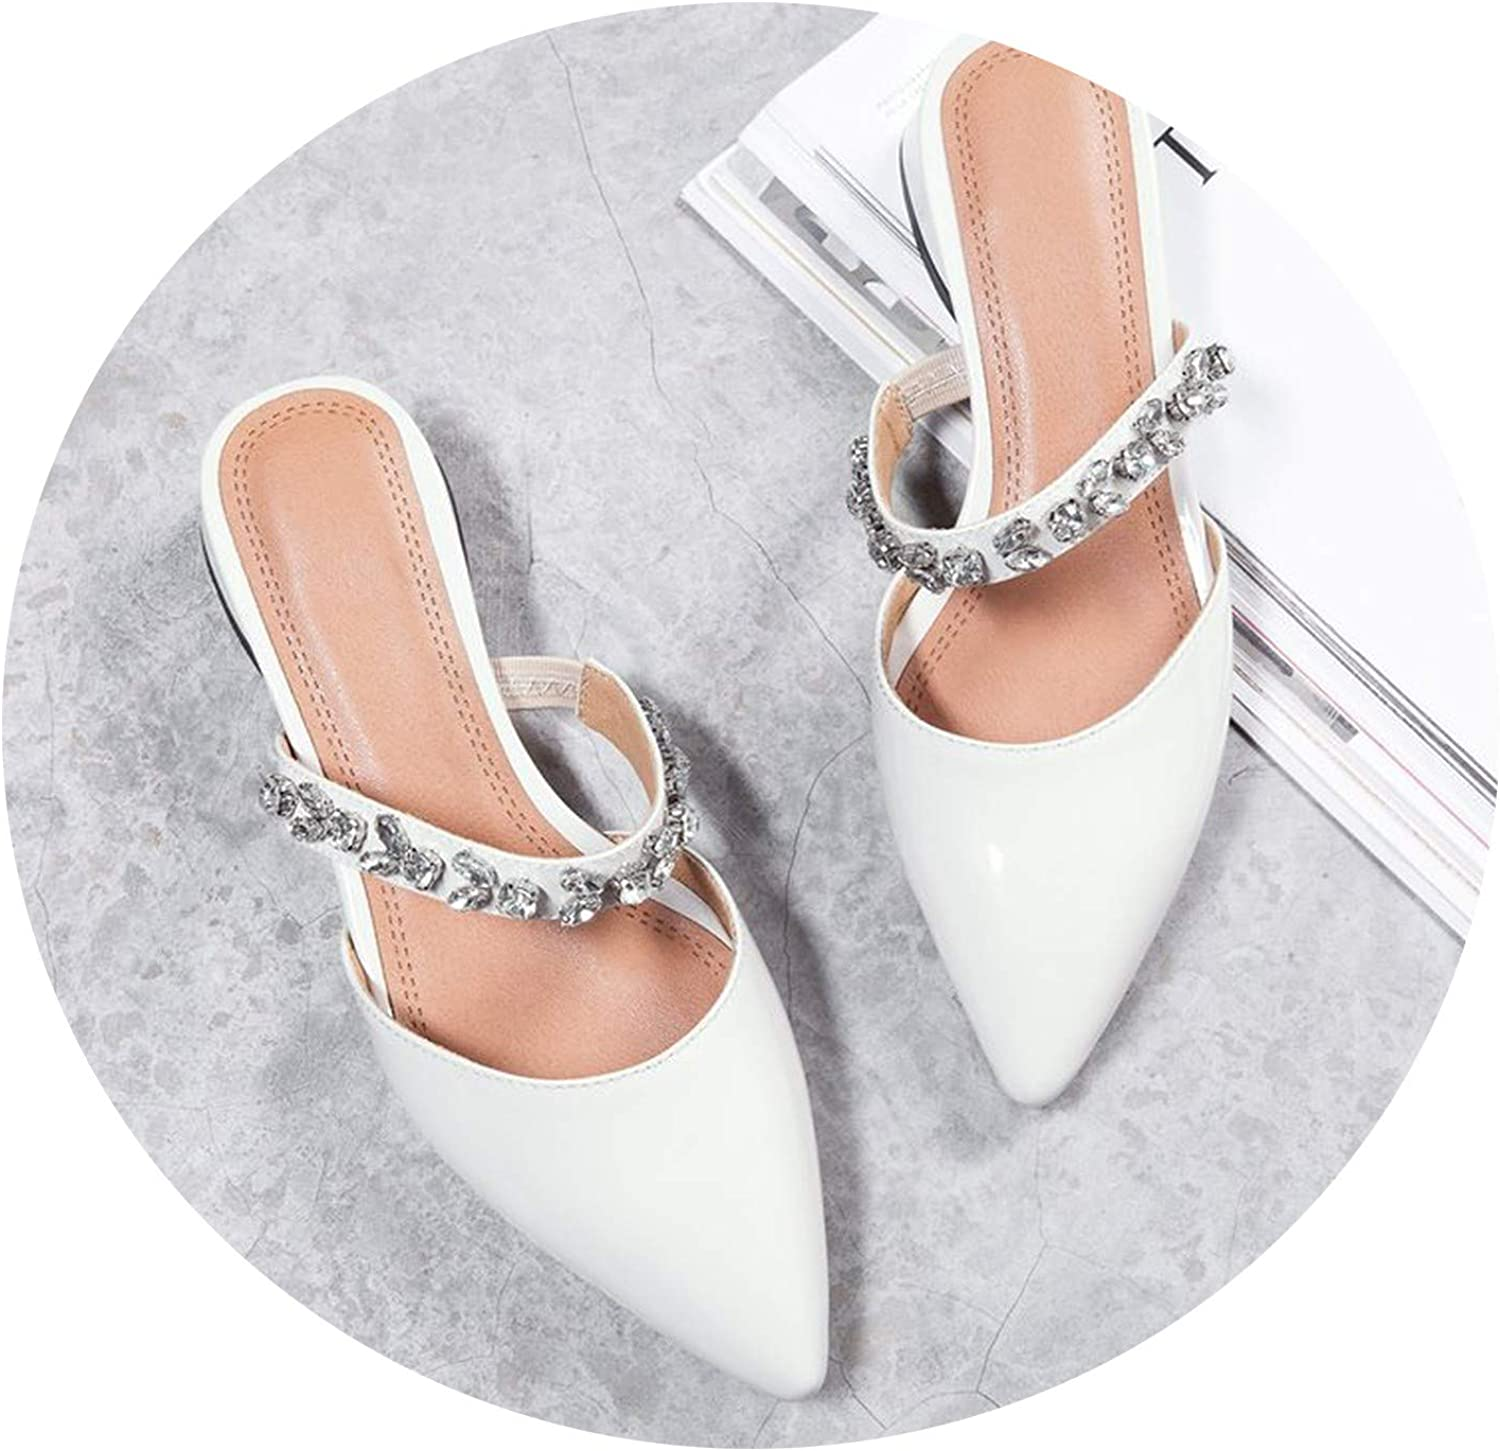 Crystal Patent Leather Pointed Slippers Fashion red Black Beige Outside 3cm Low Heels Woman Mules pu shoes